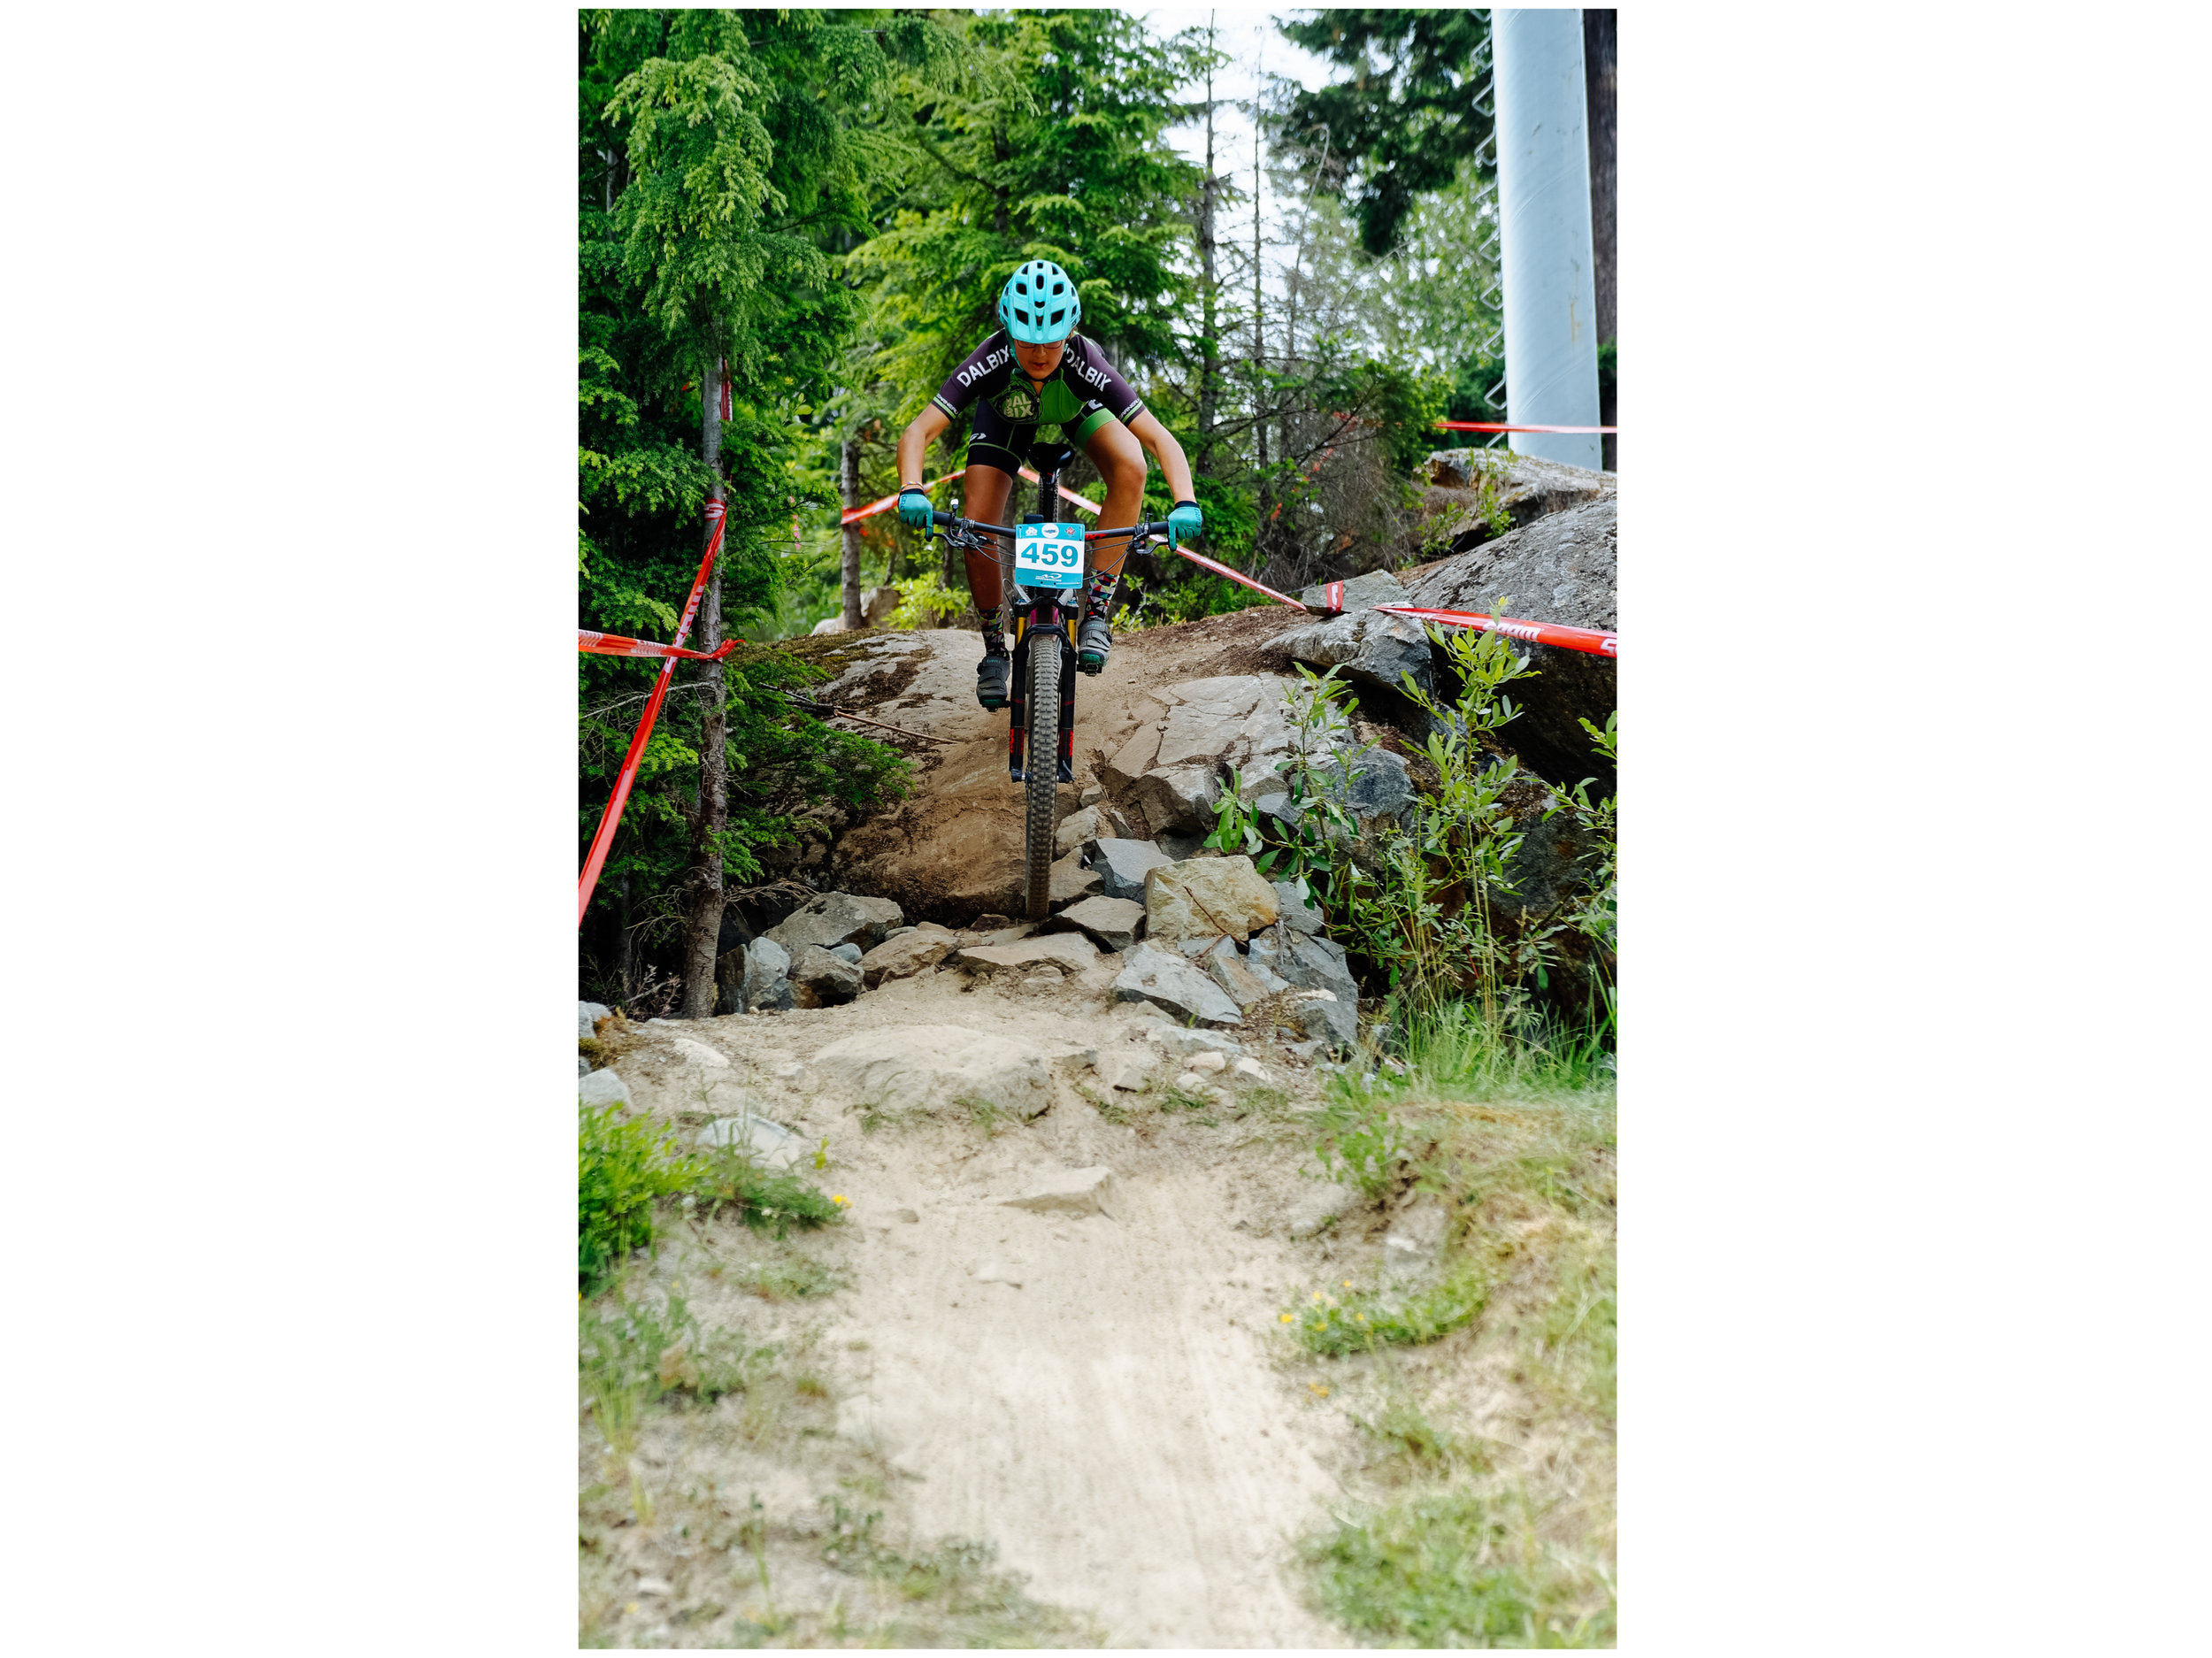 Mathilde showing great form on a steep line during the Whistler Canada Cup.